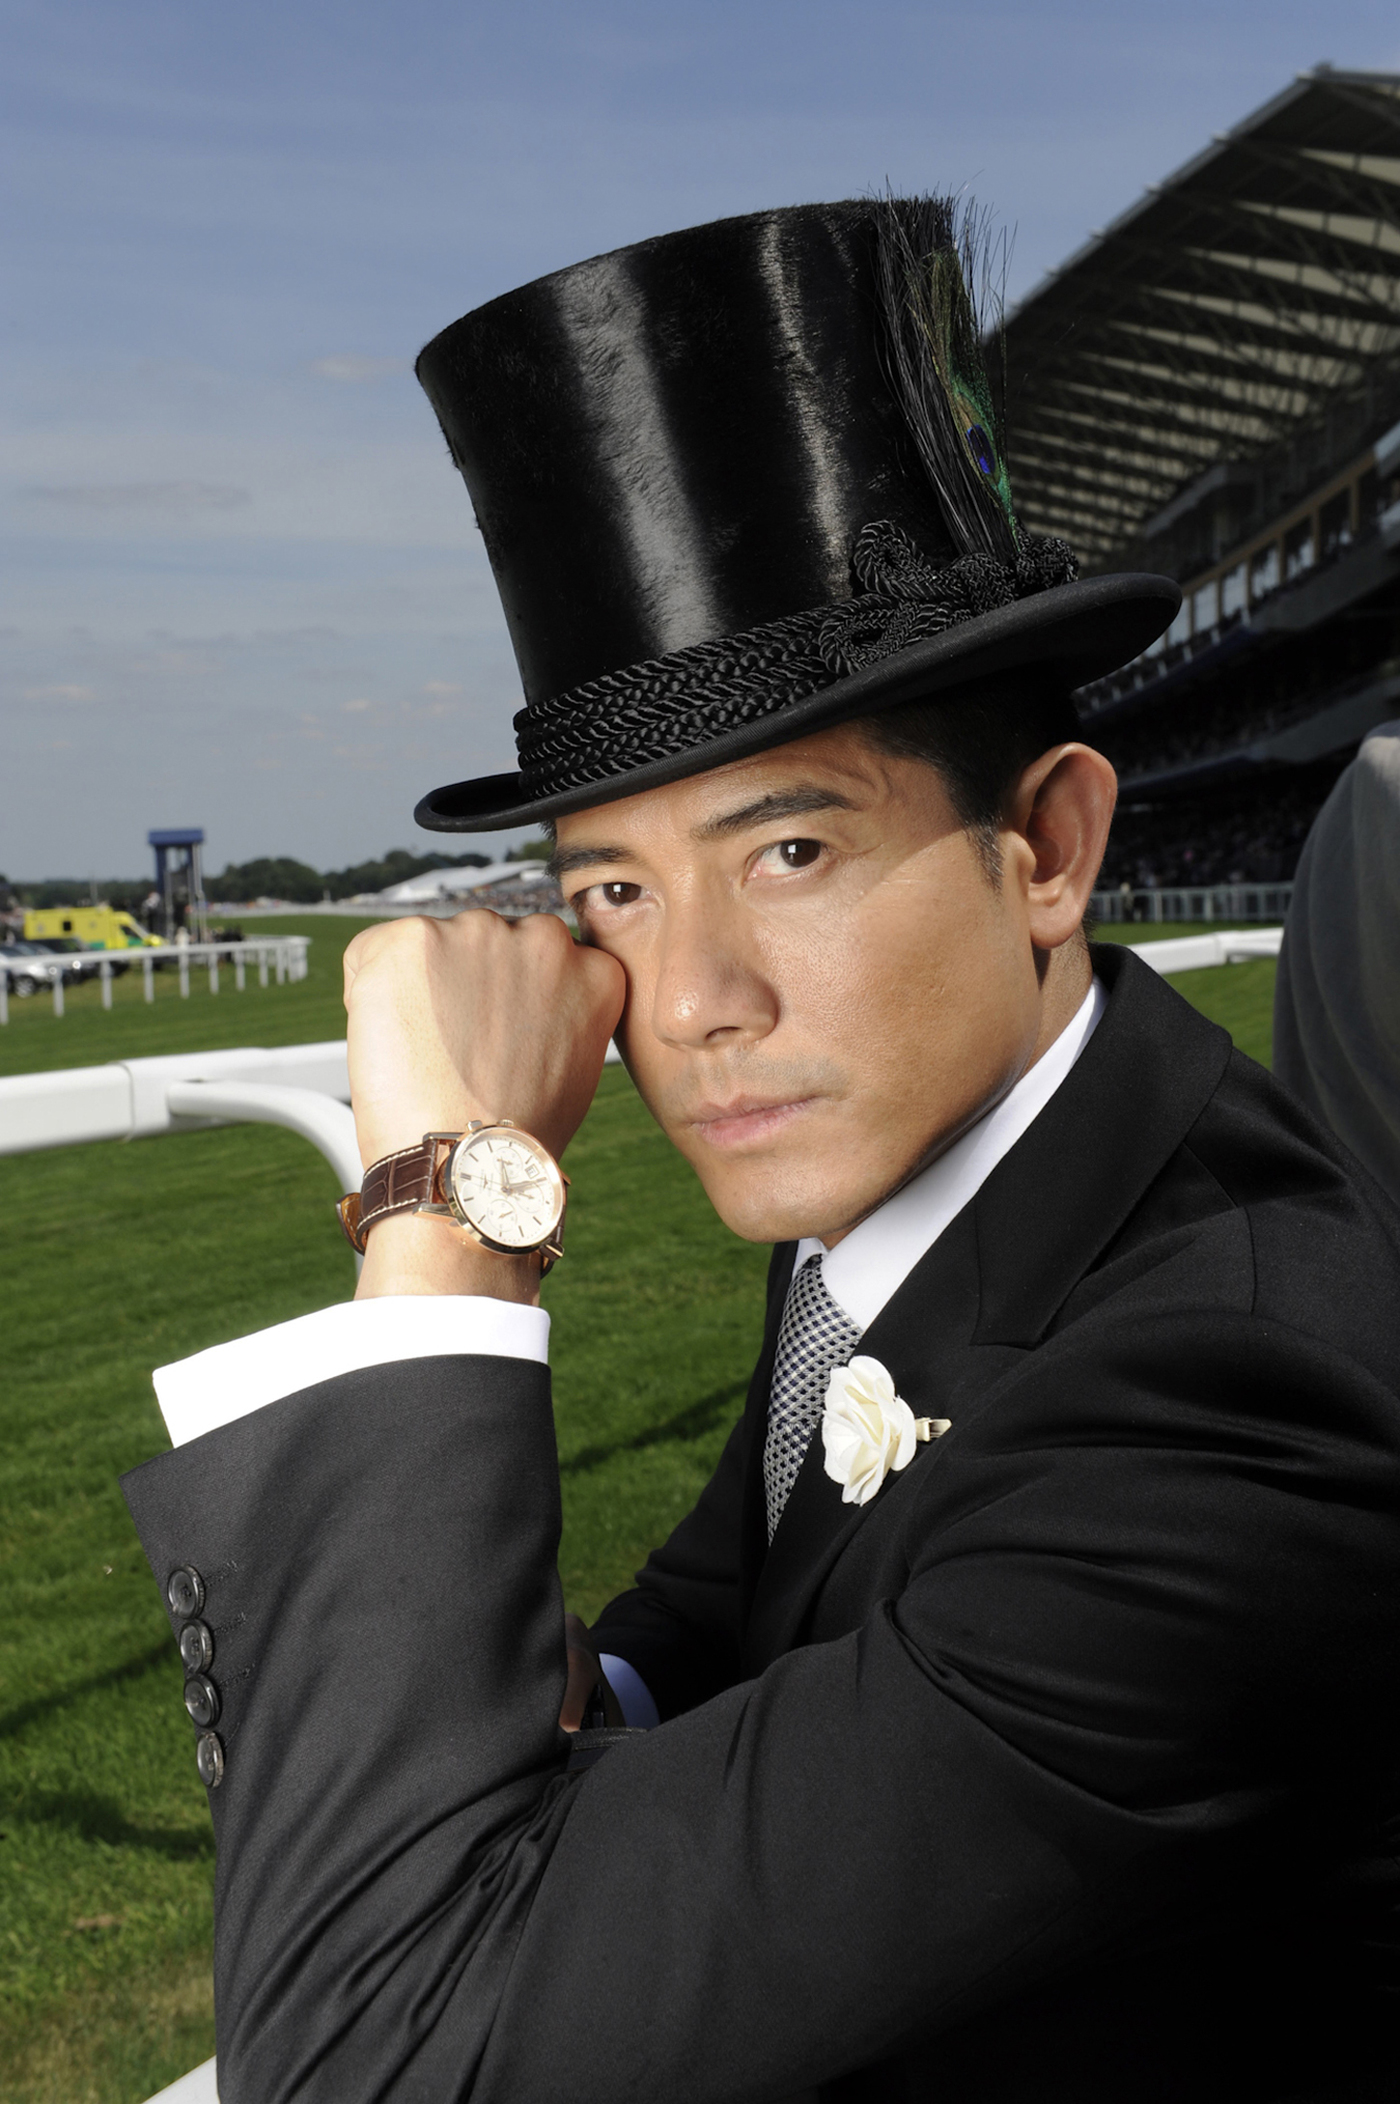 Longines Flat Racing Event: A day of glamour at Ascot with Aaron Kwok, Longines ambassador of Elegance 4